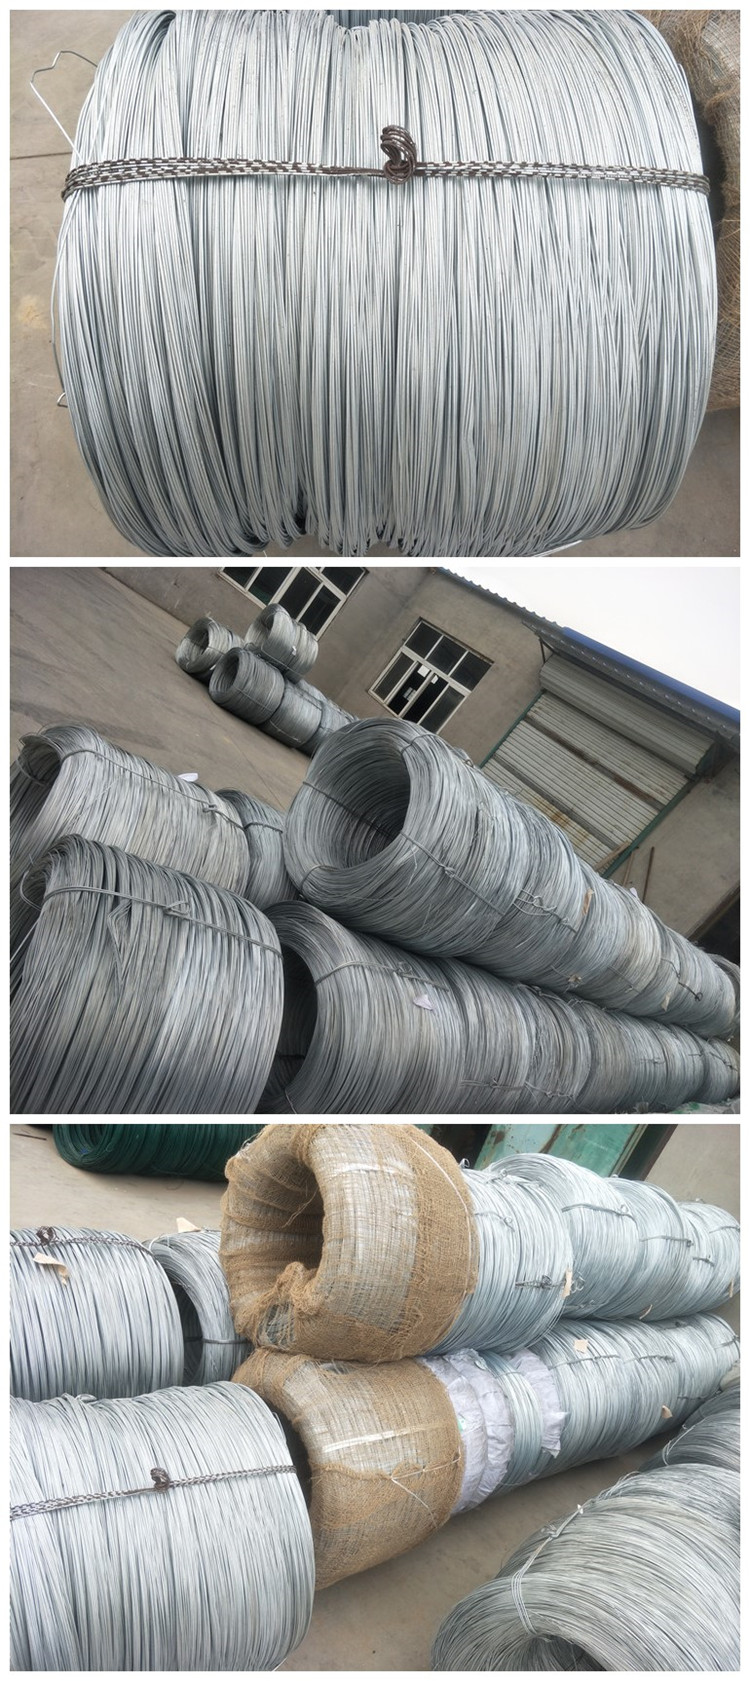 Galvanized Iron Wire50